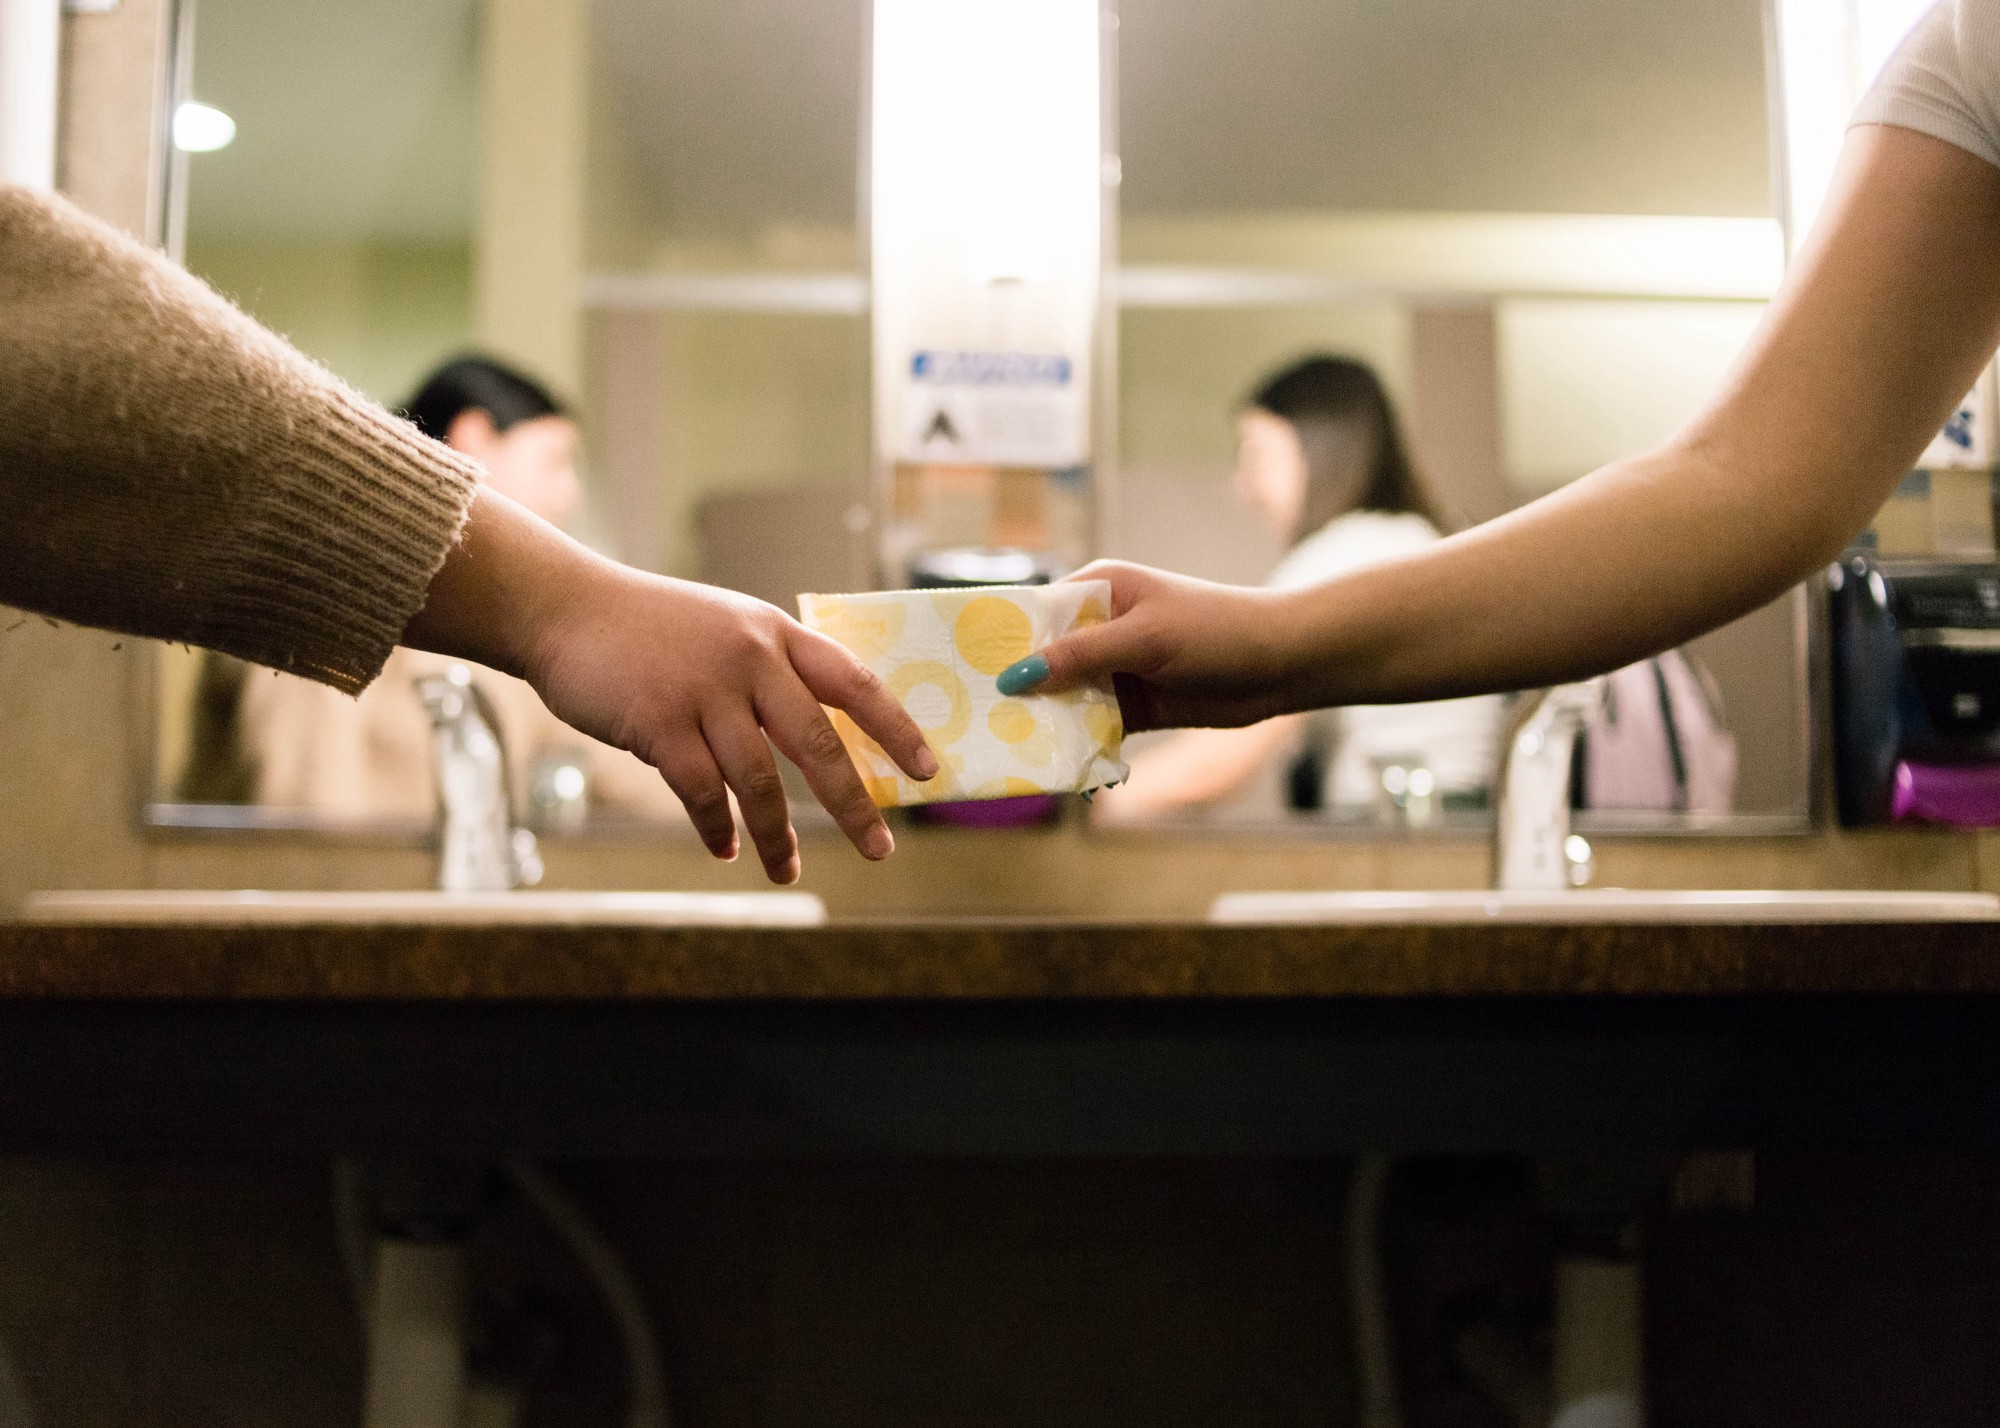 A woman passes a menstrual product to another.